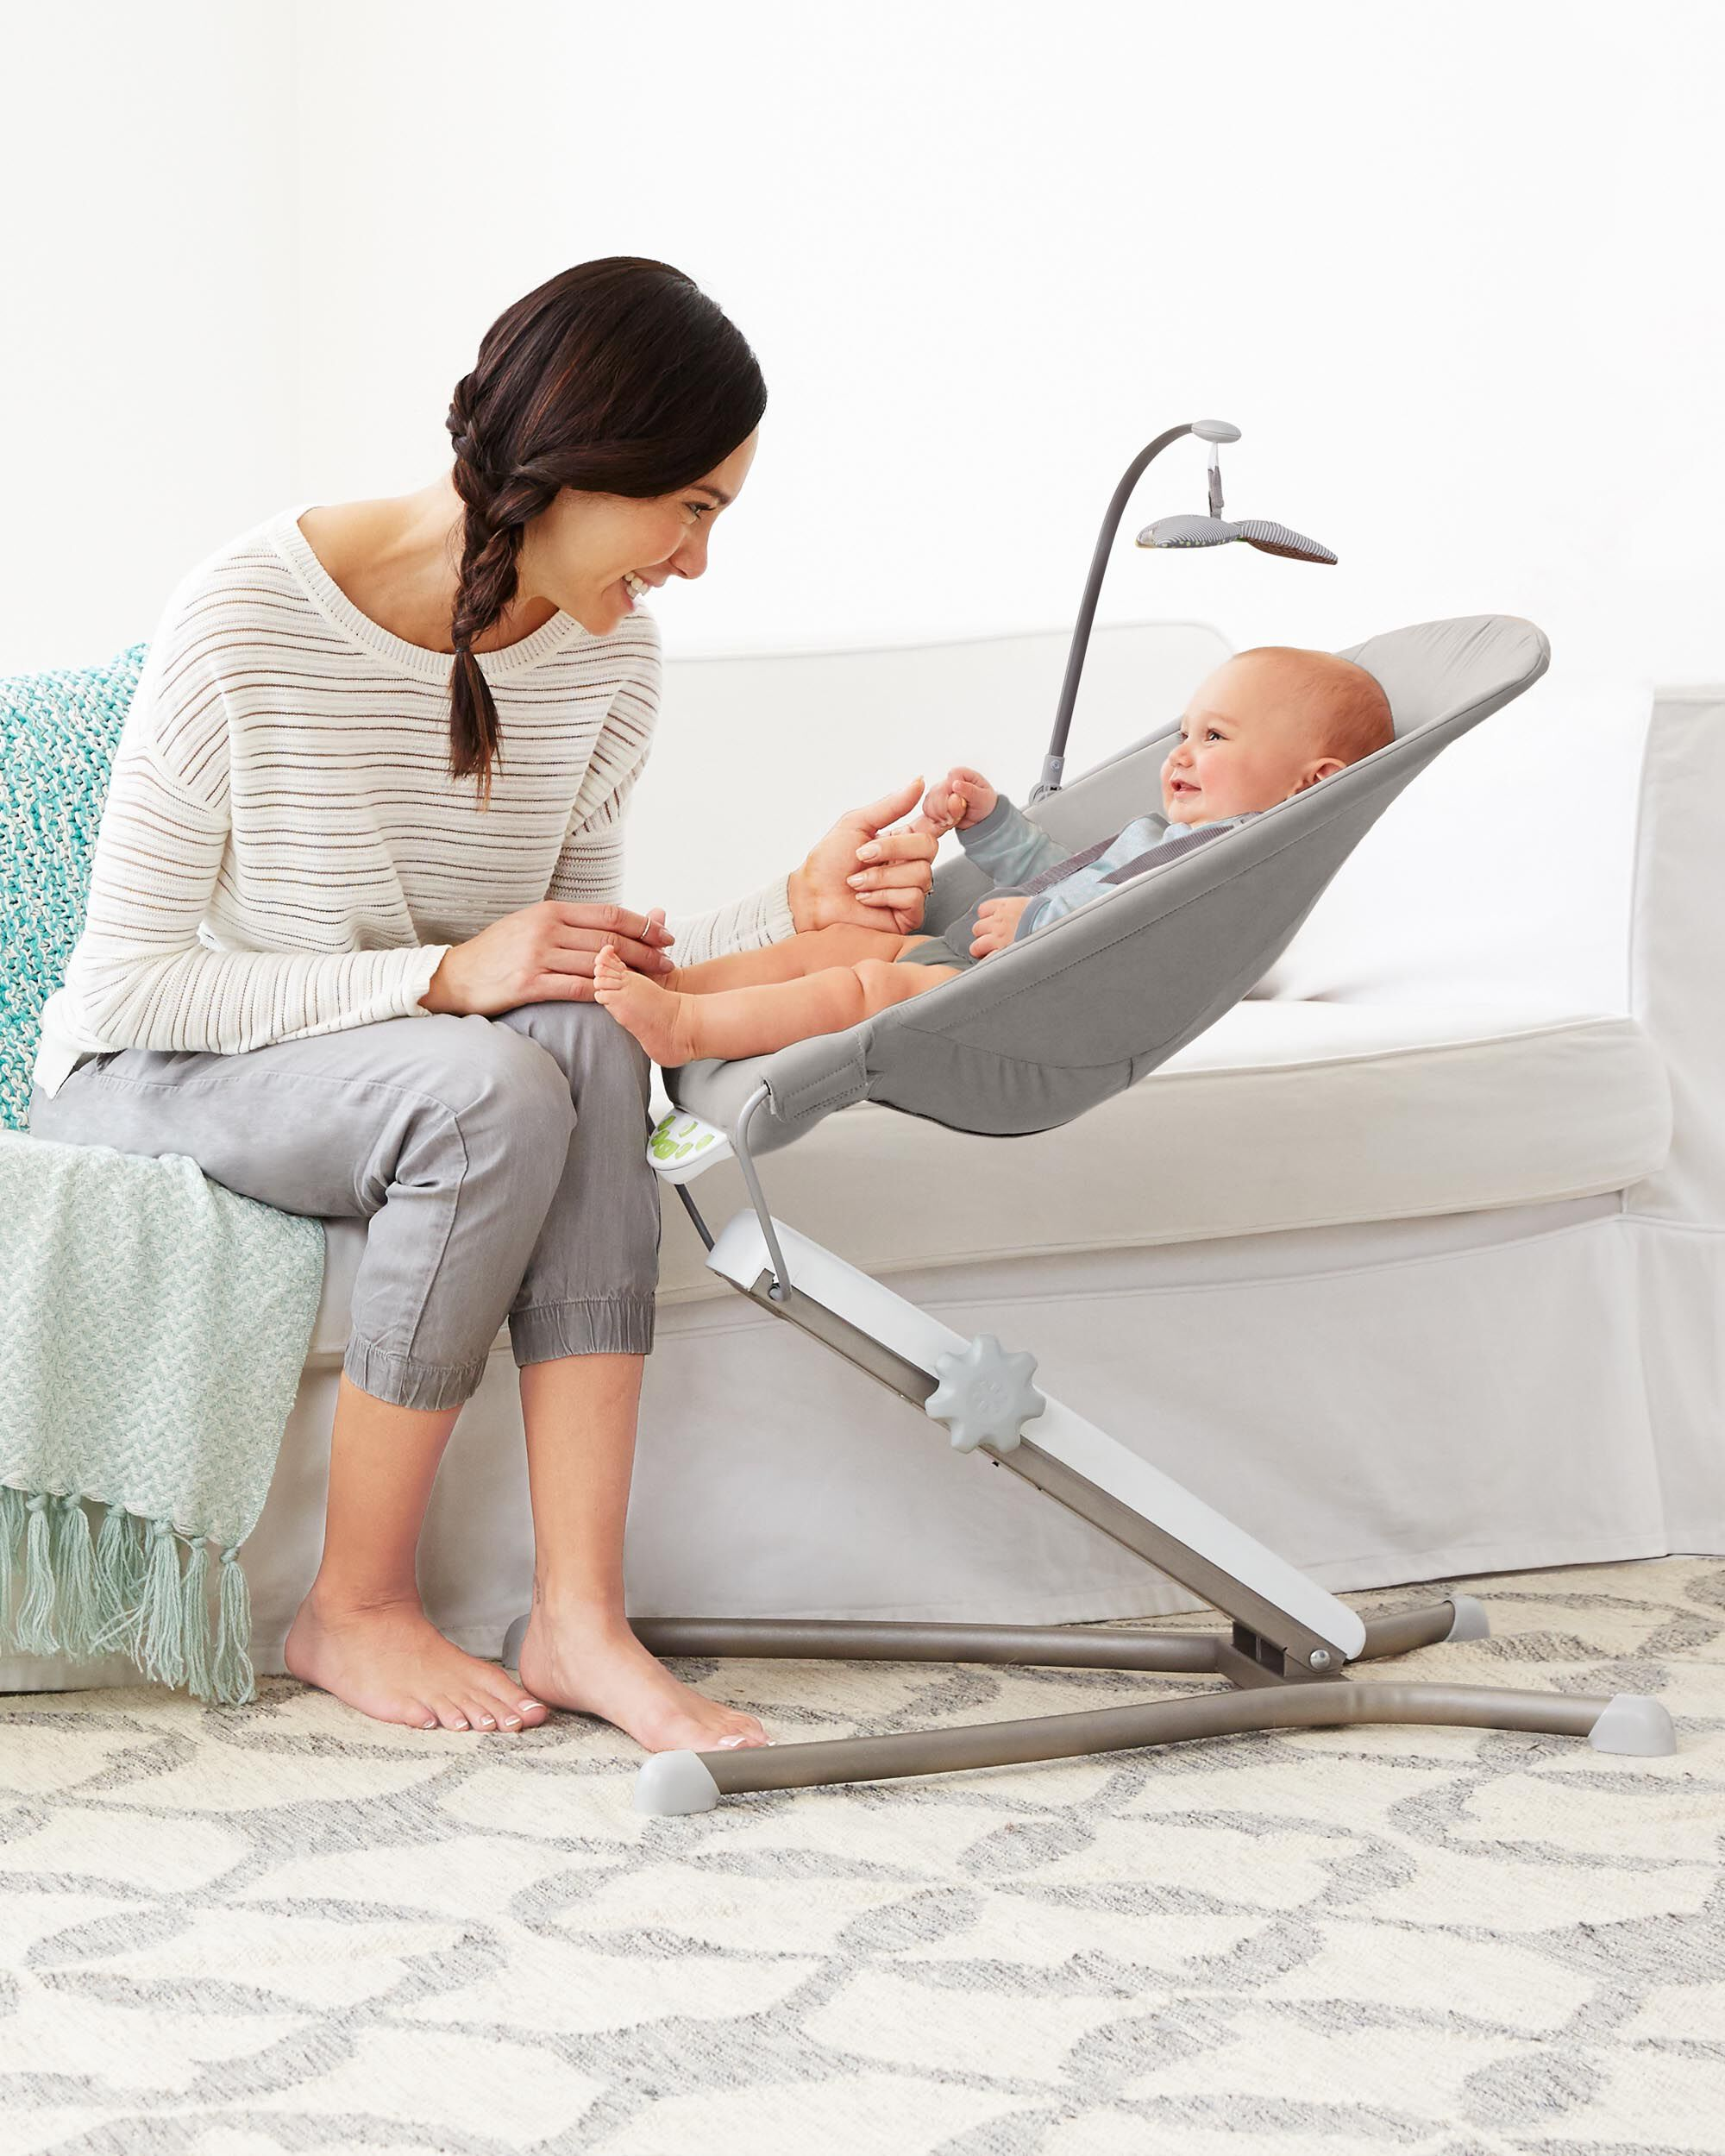 Uplift Multi-Level Baby Bouncer ... & Uplift Multi-Level Baby Bouncer | Skiphop.com